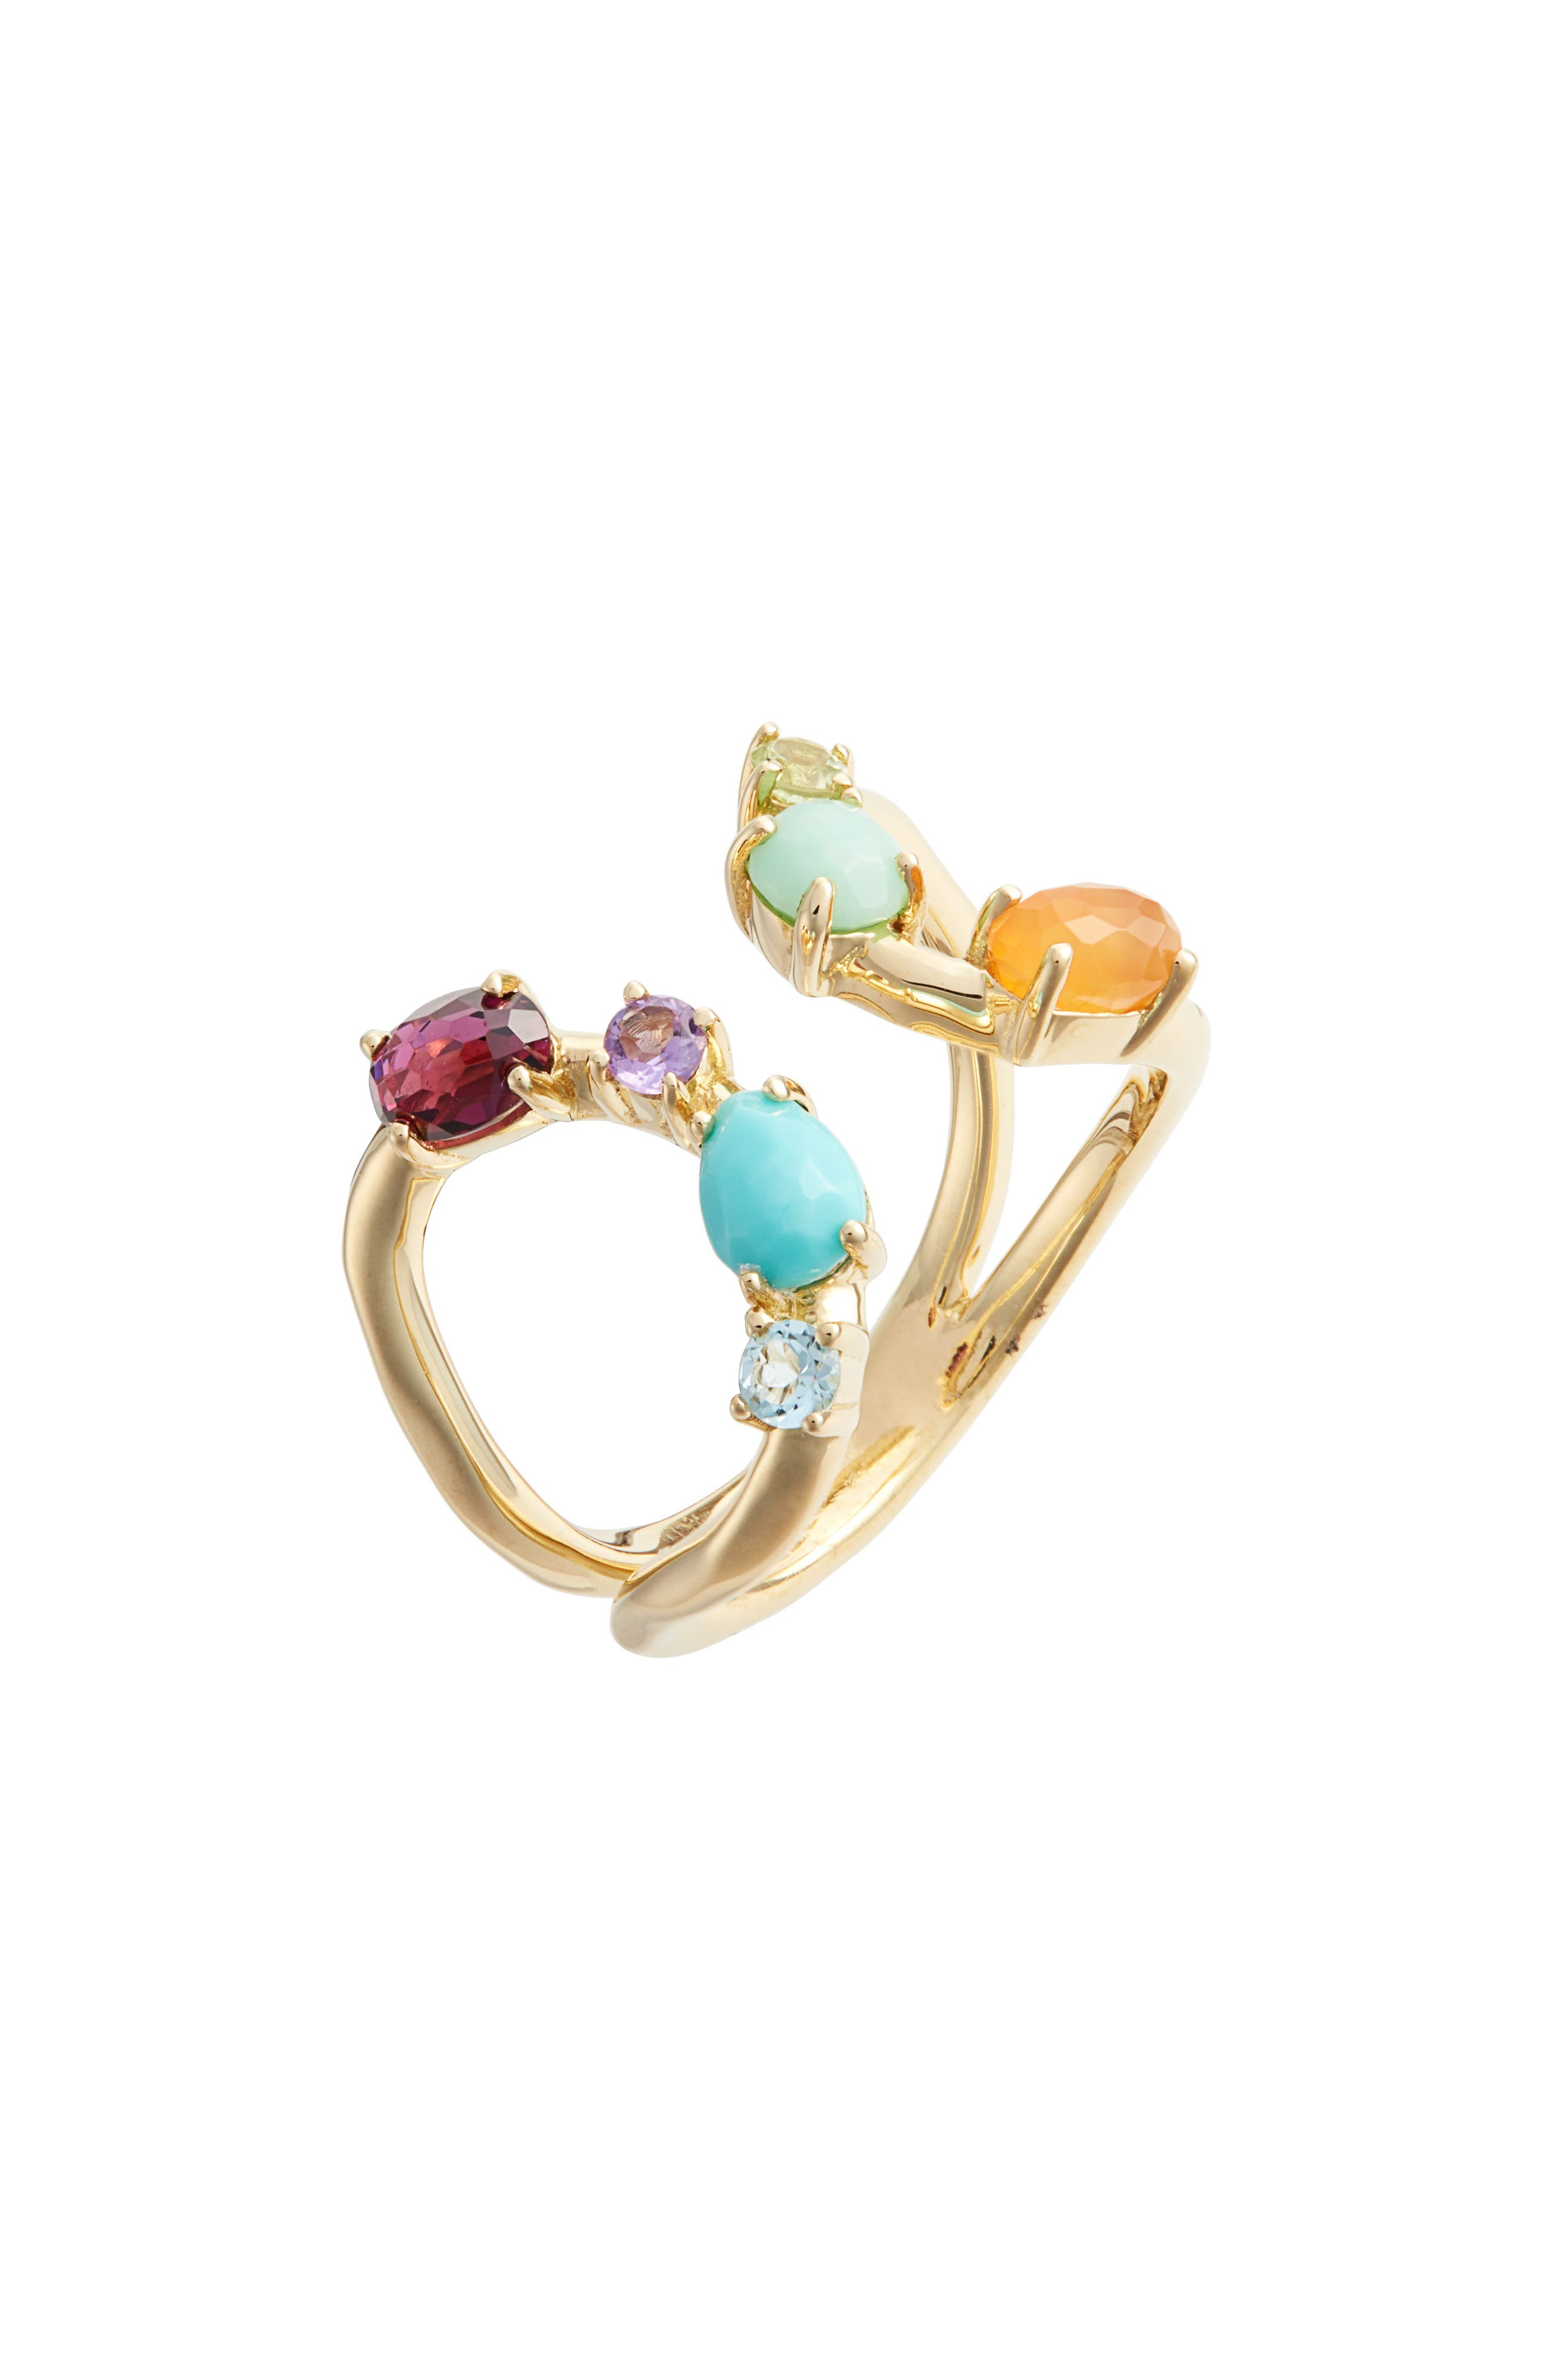 Rock Candy 18K Gold Open Ring,                             Main thumbnail 1, color,                             GOLD/ MULTI